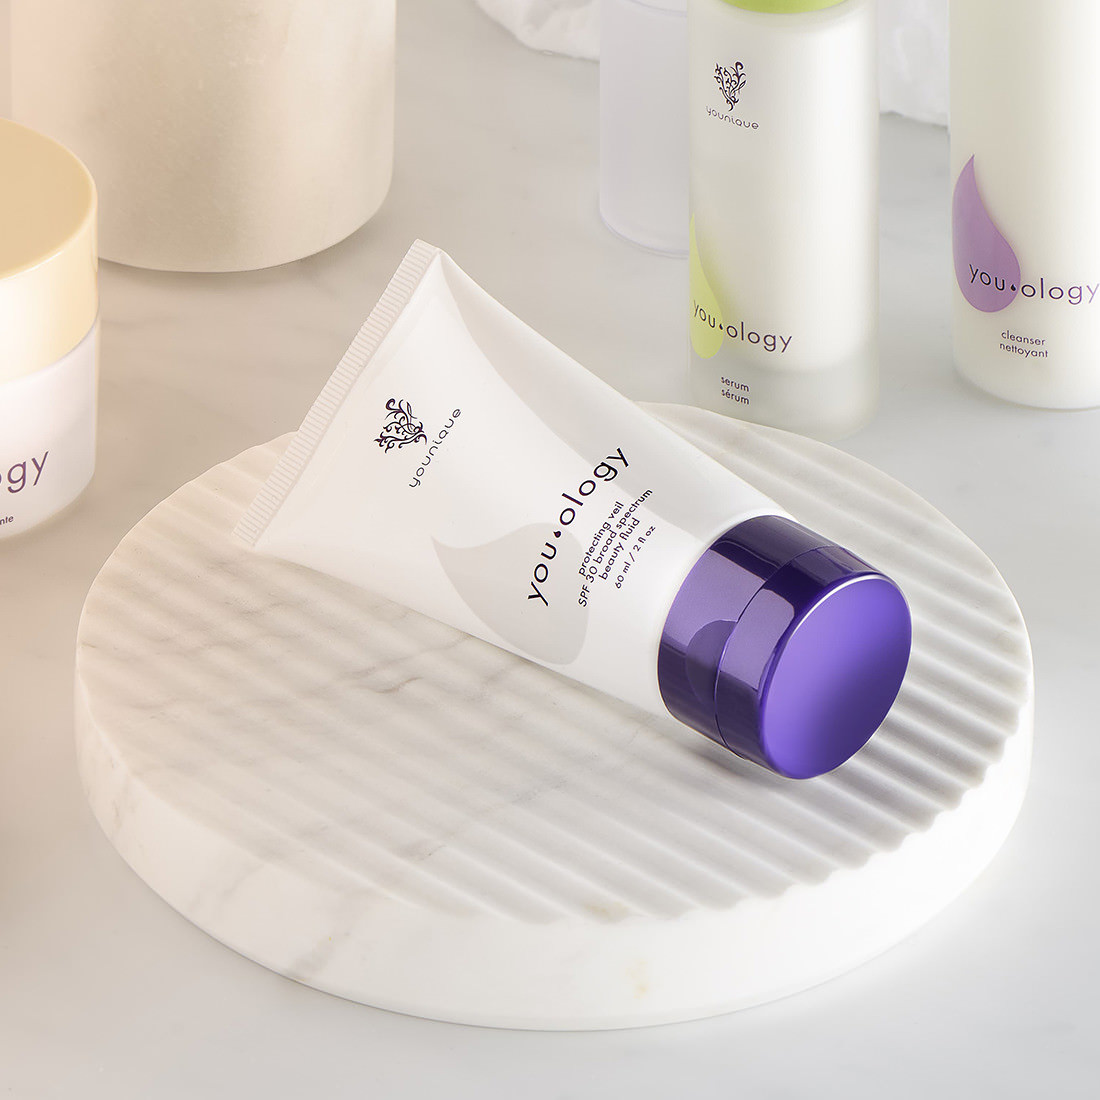 YOUOLOGY protecting veil SPF 30 broad spectrum beauty fluid